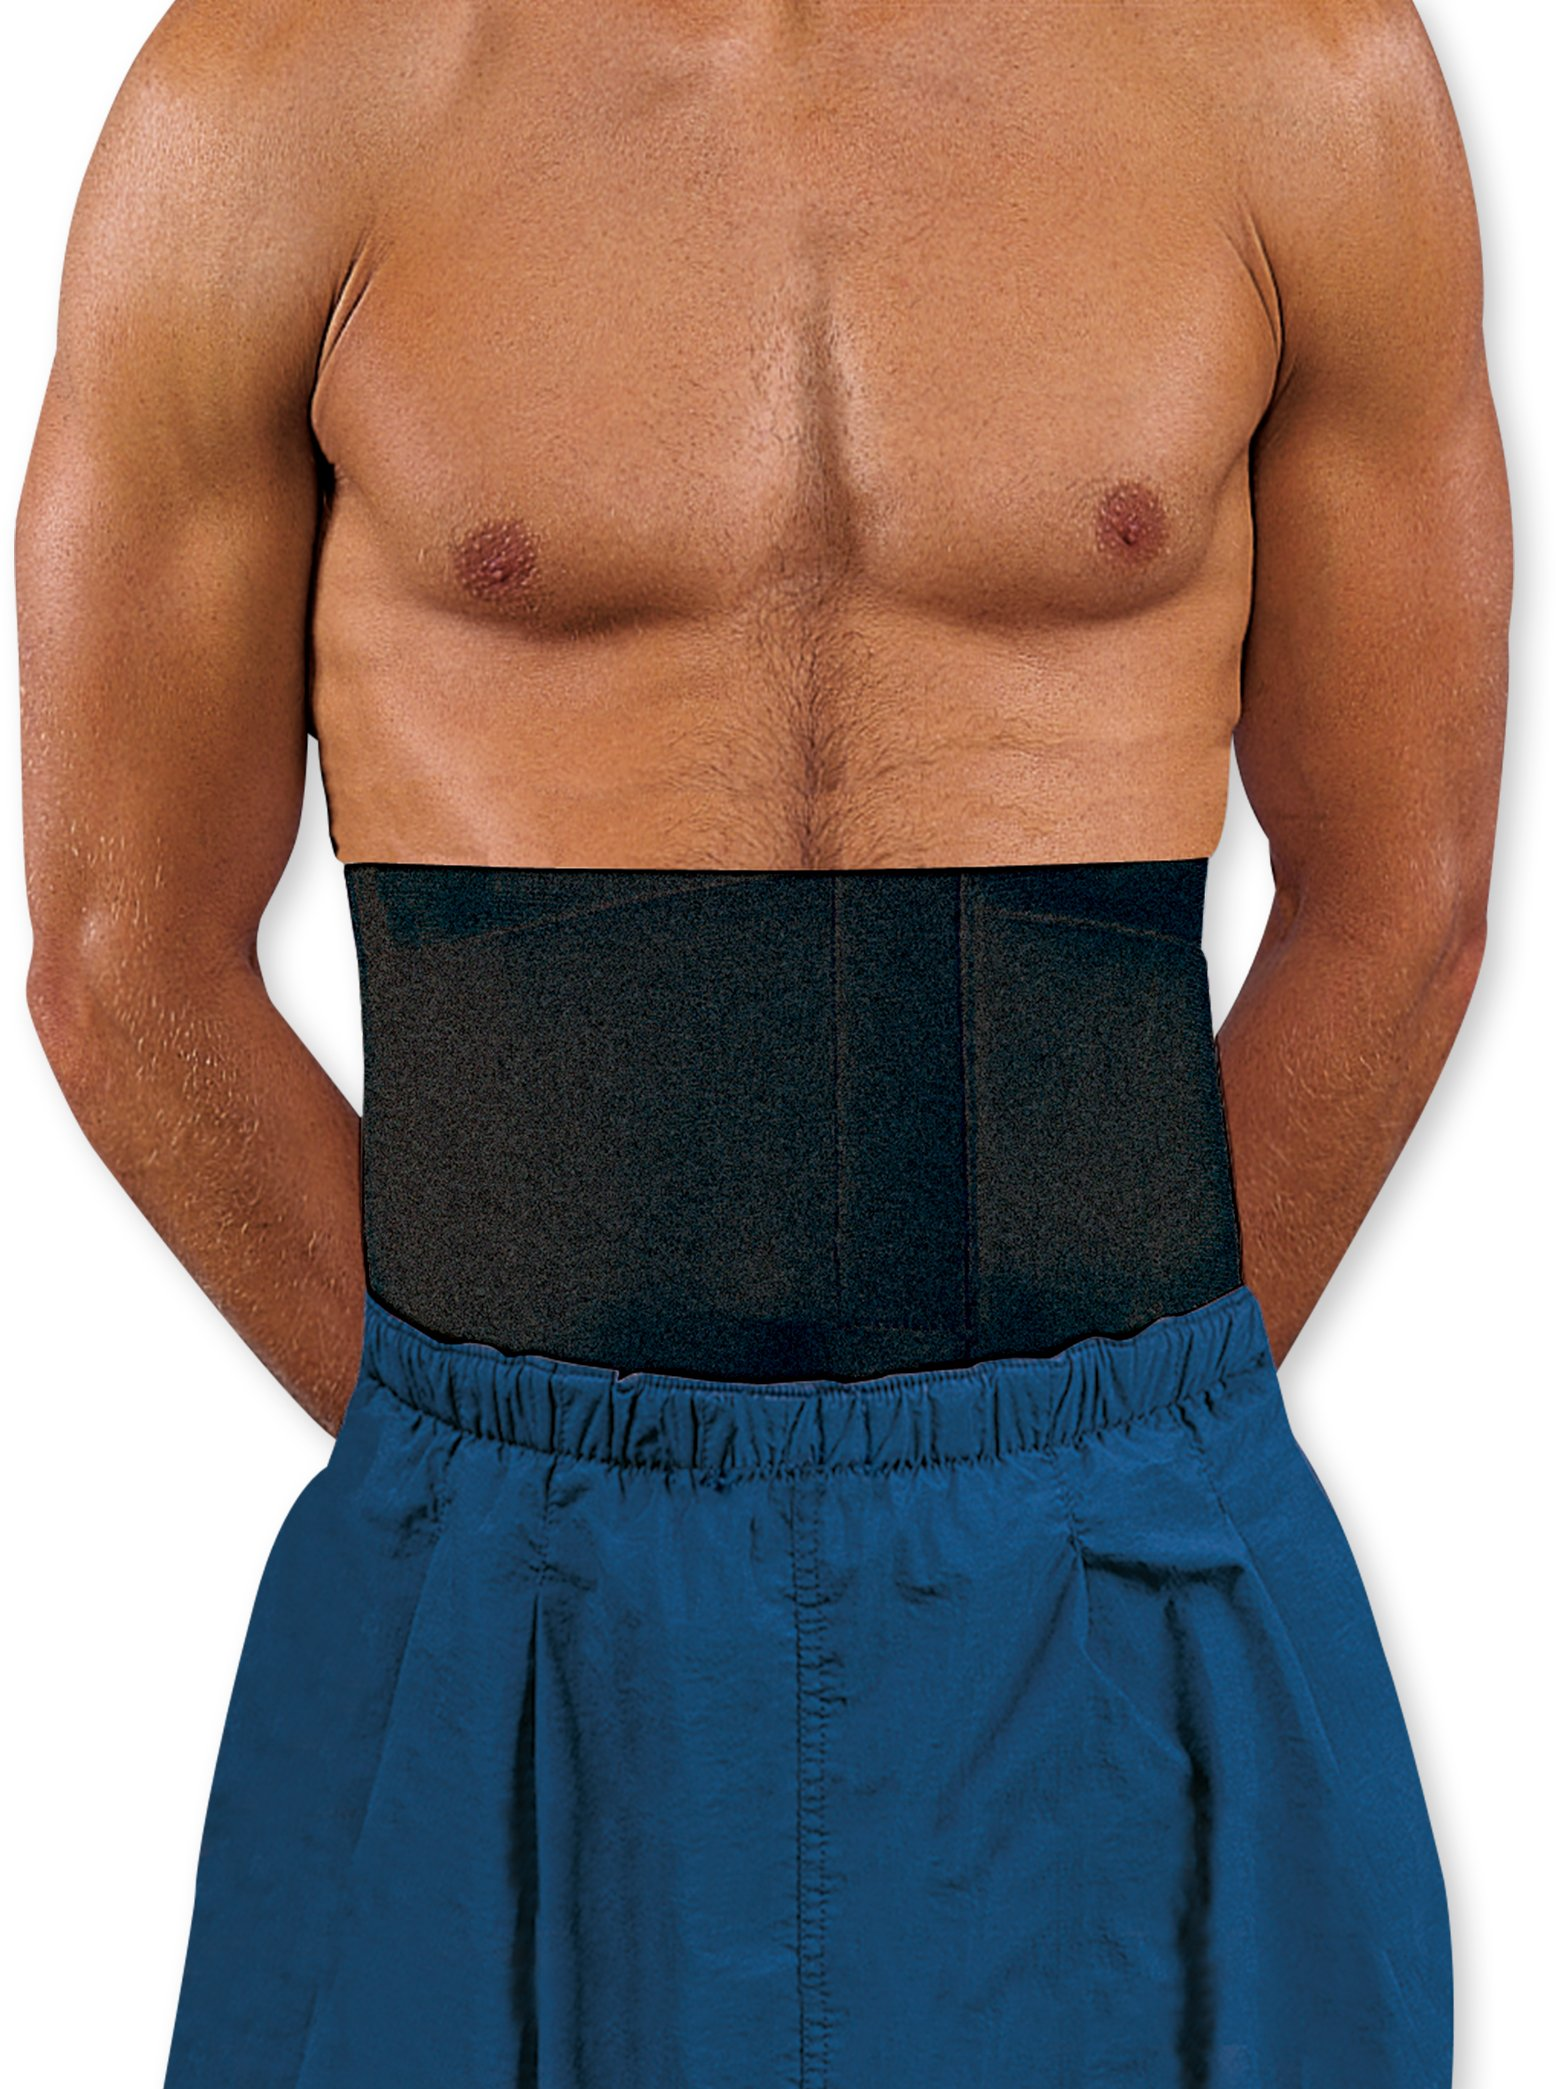 WellWear Elastic Back Support, One Size